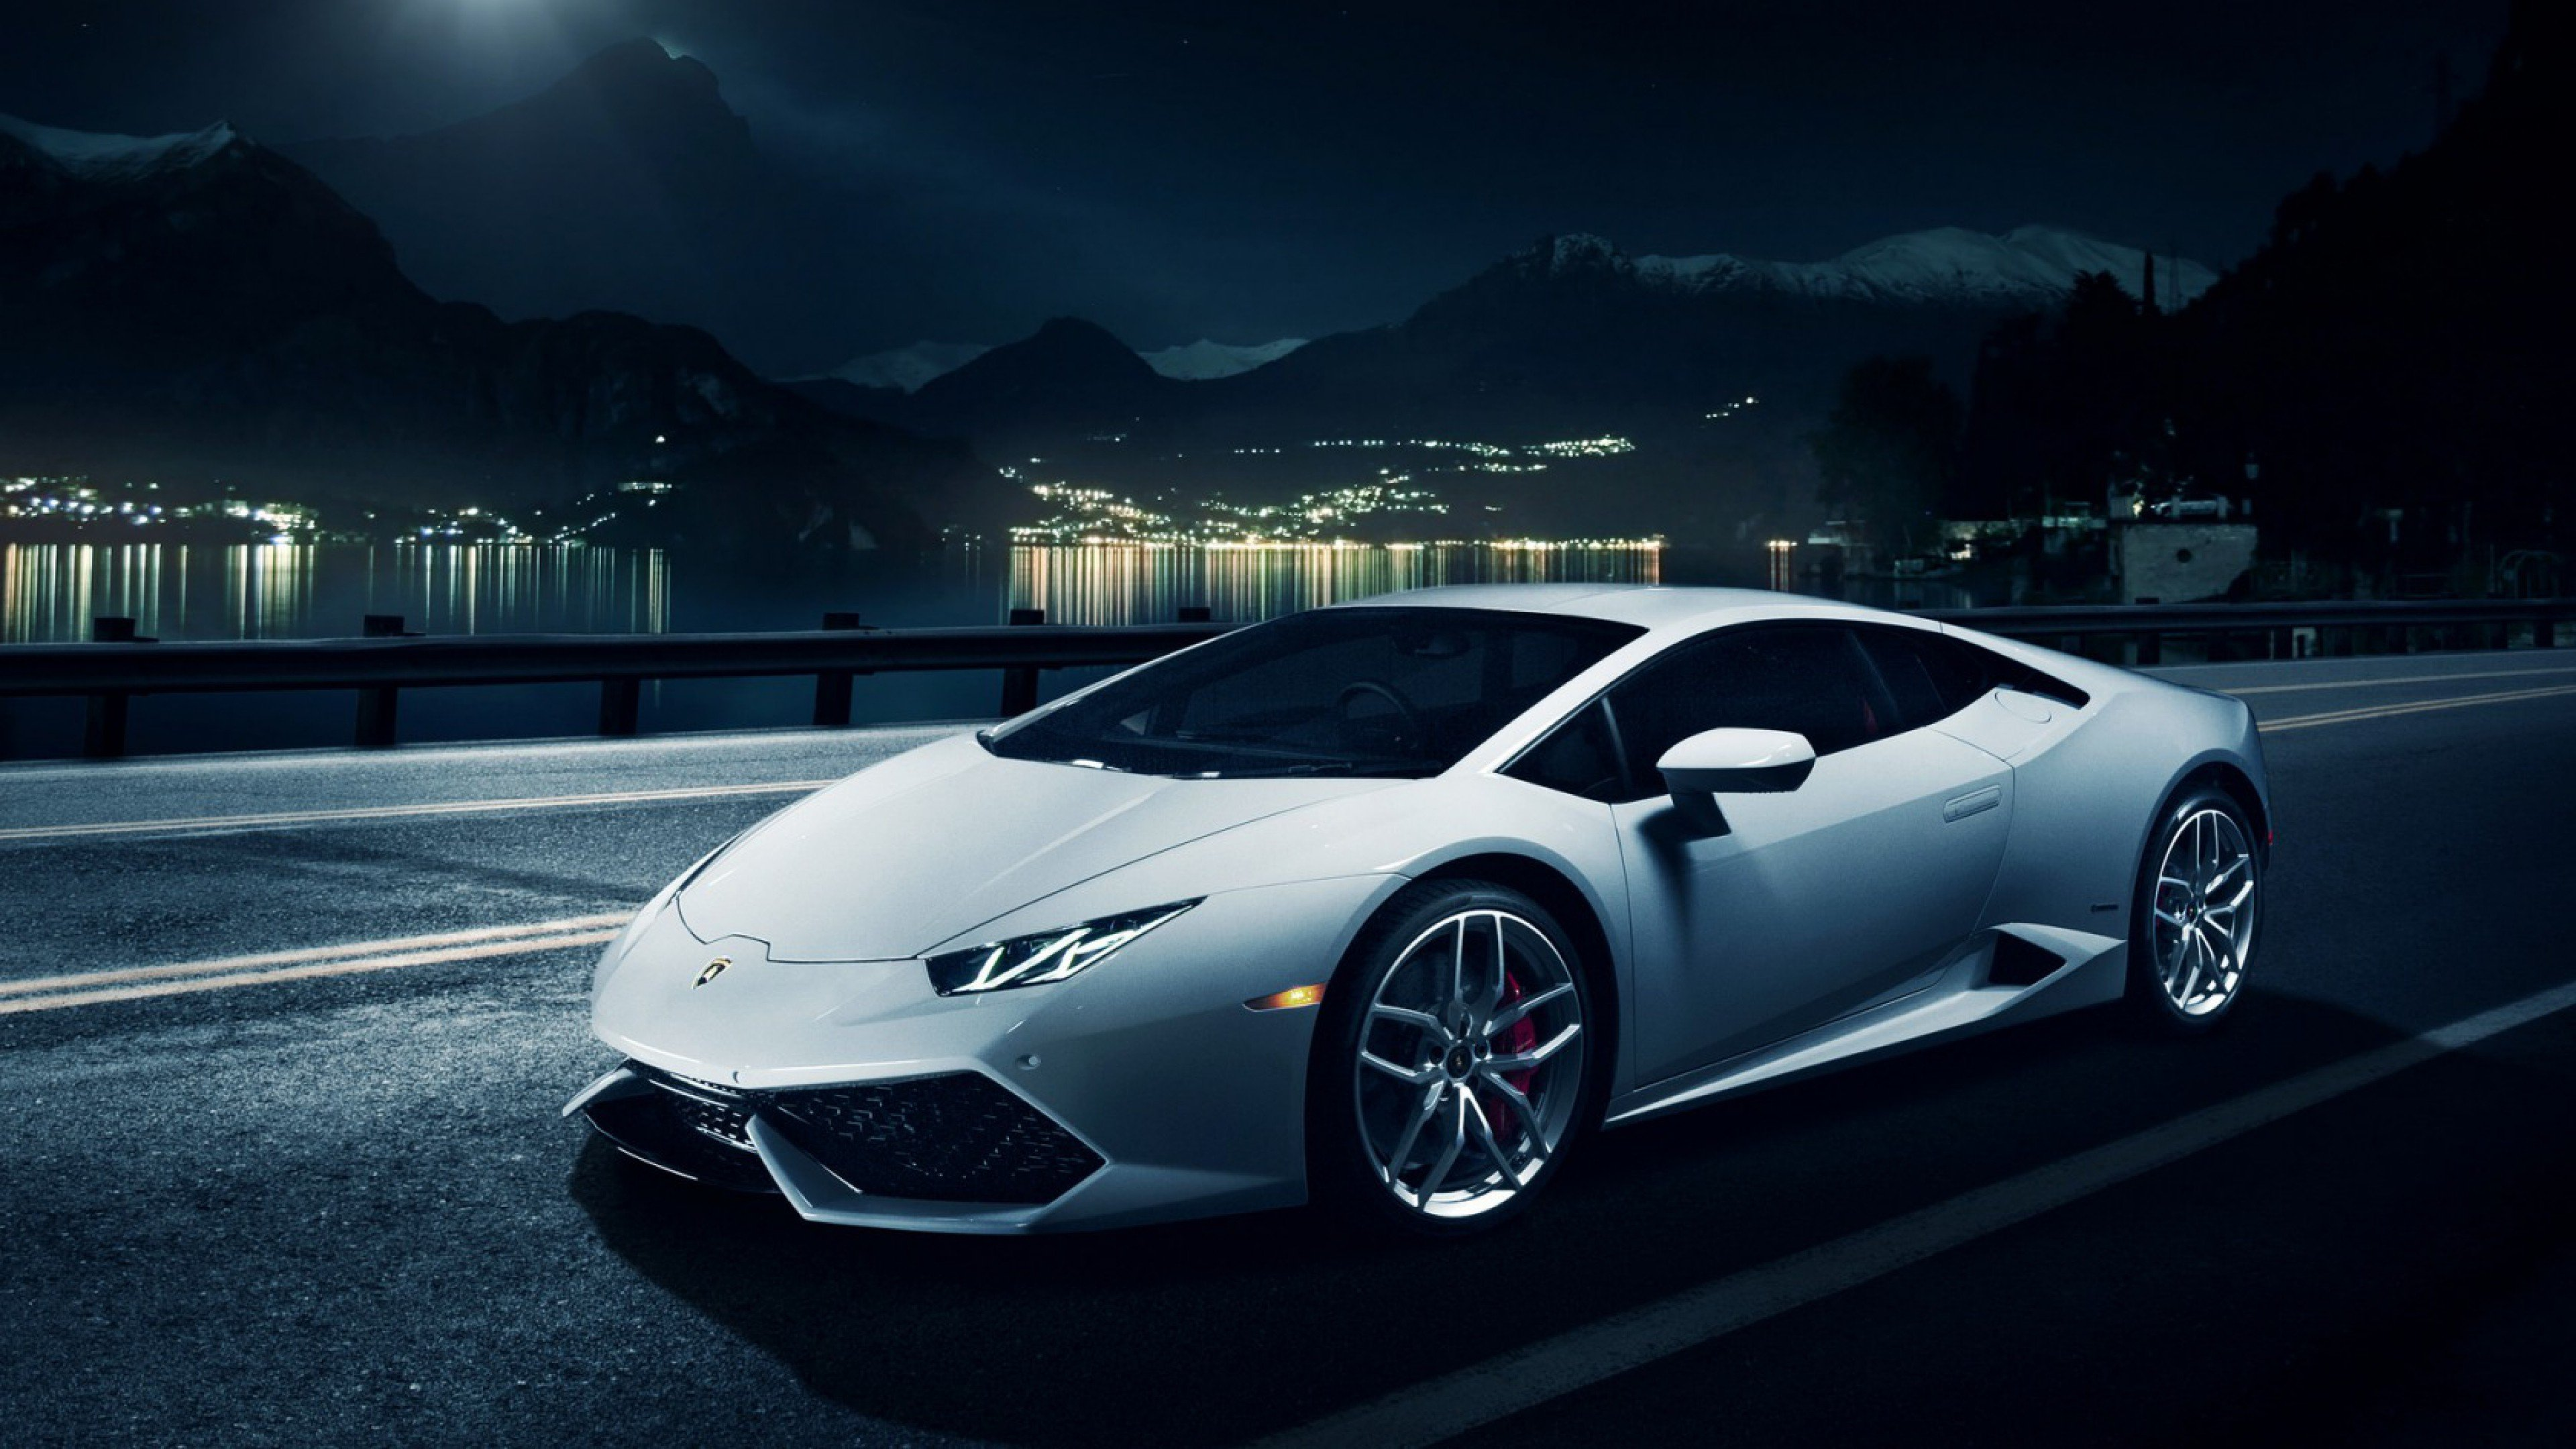 Lamborghini Huracan HD HD Cars 4k Wallpapers Images